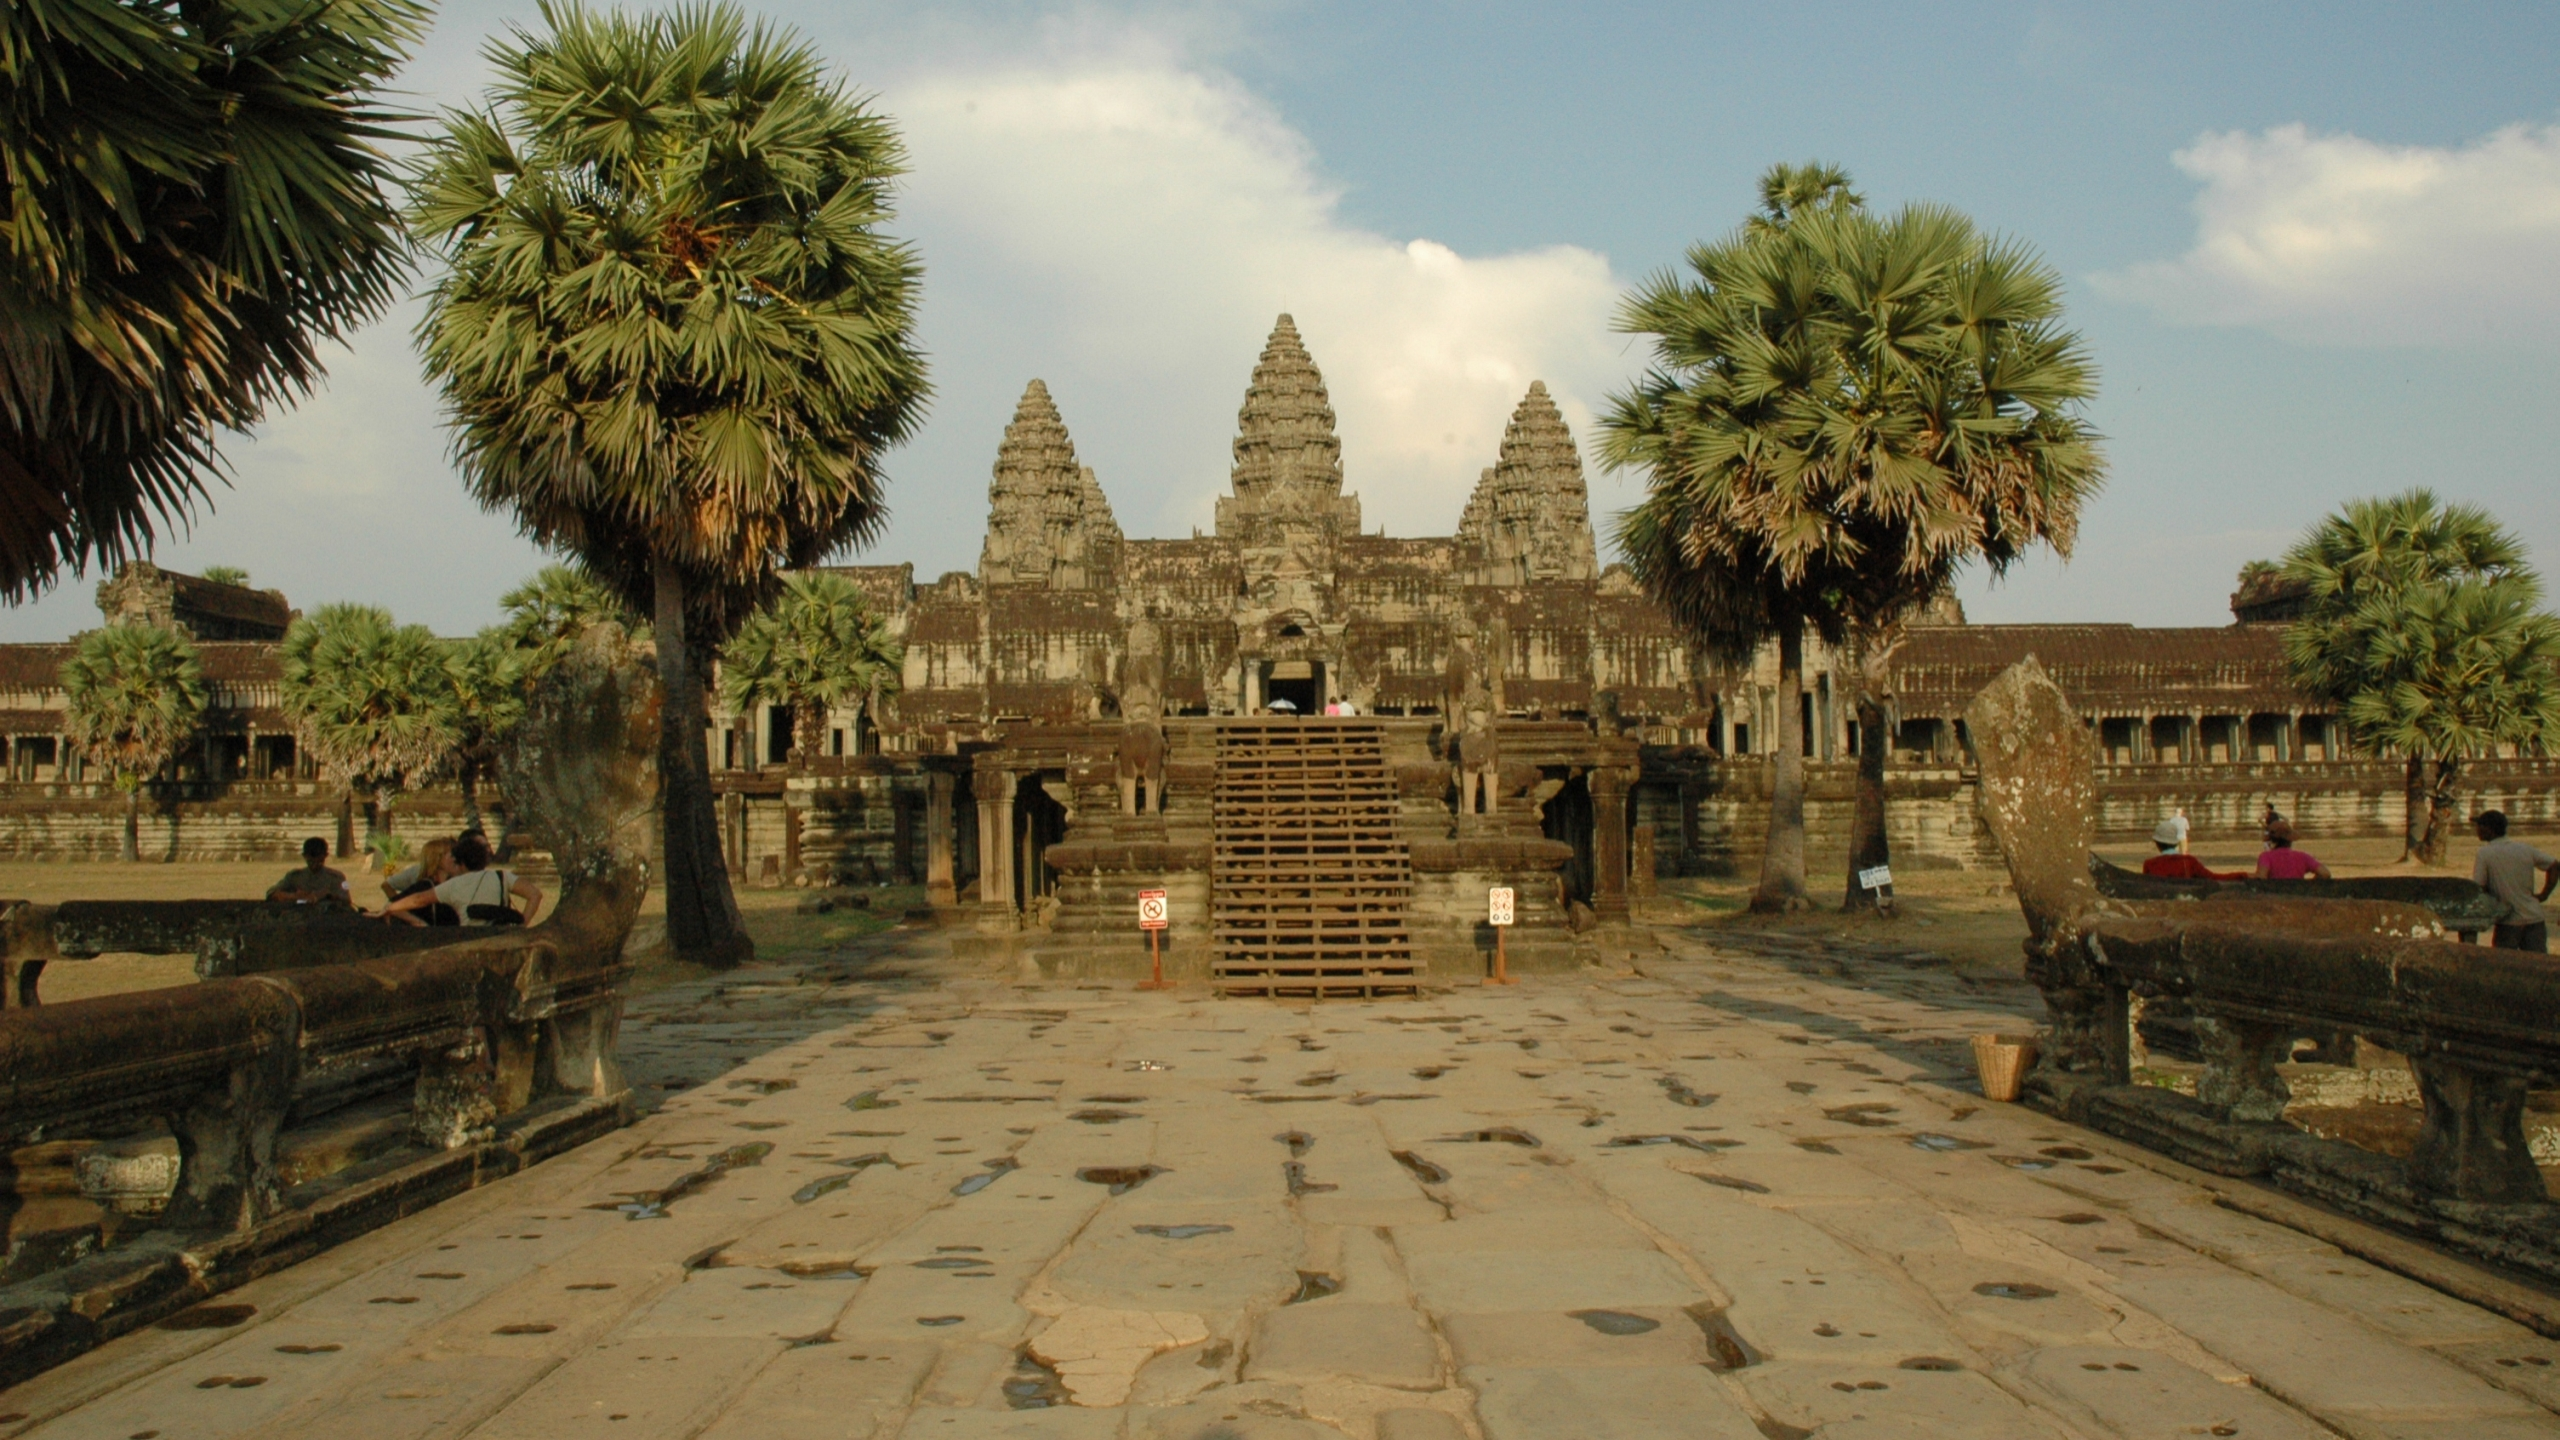 13 Angkor Wat Hd Wallpapers Background Images Wallpaper